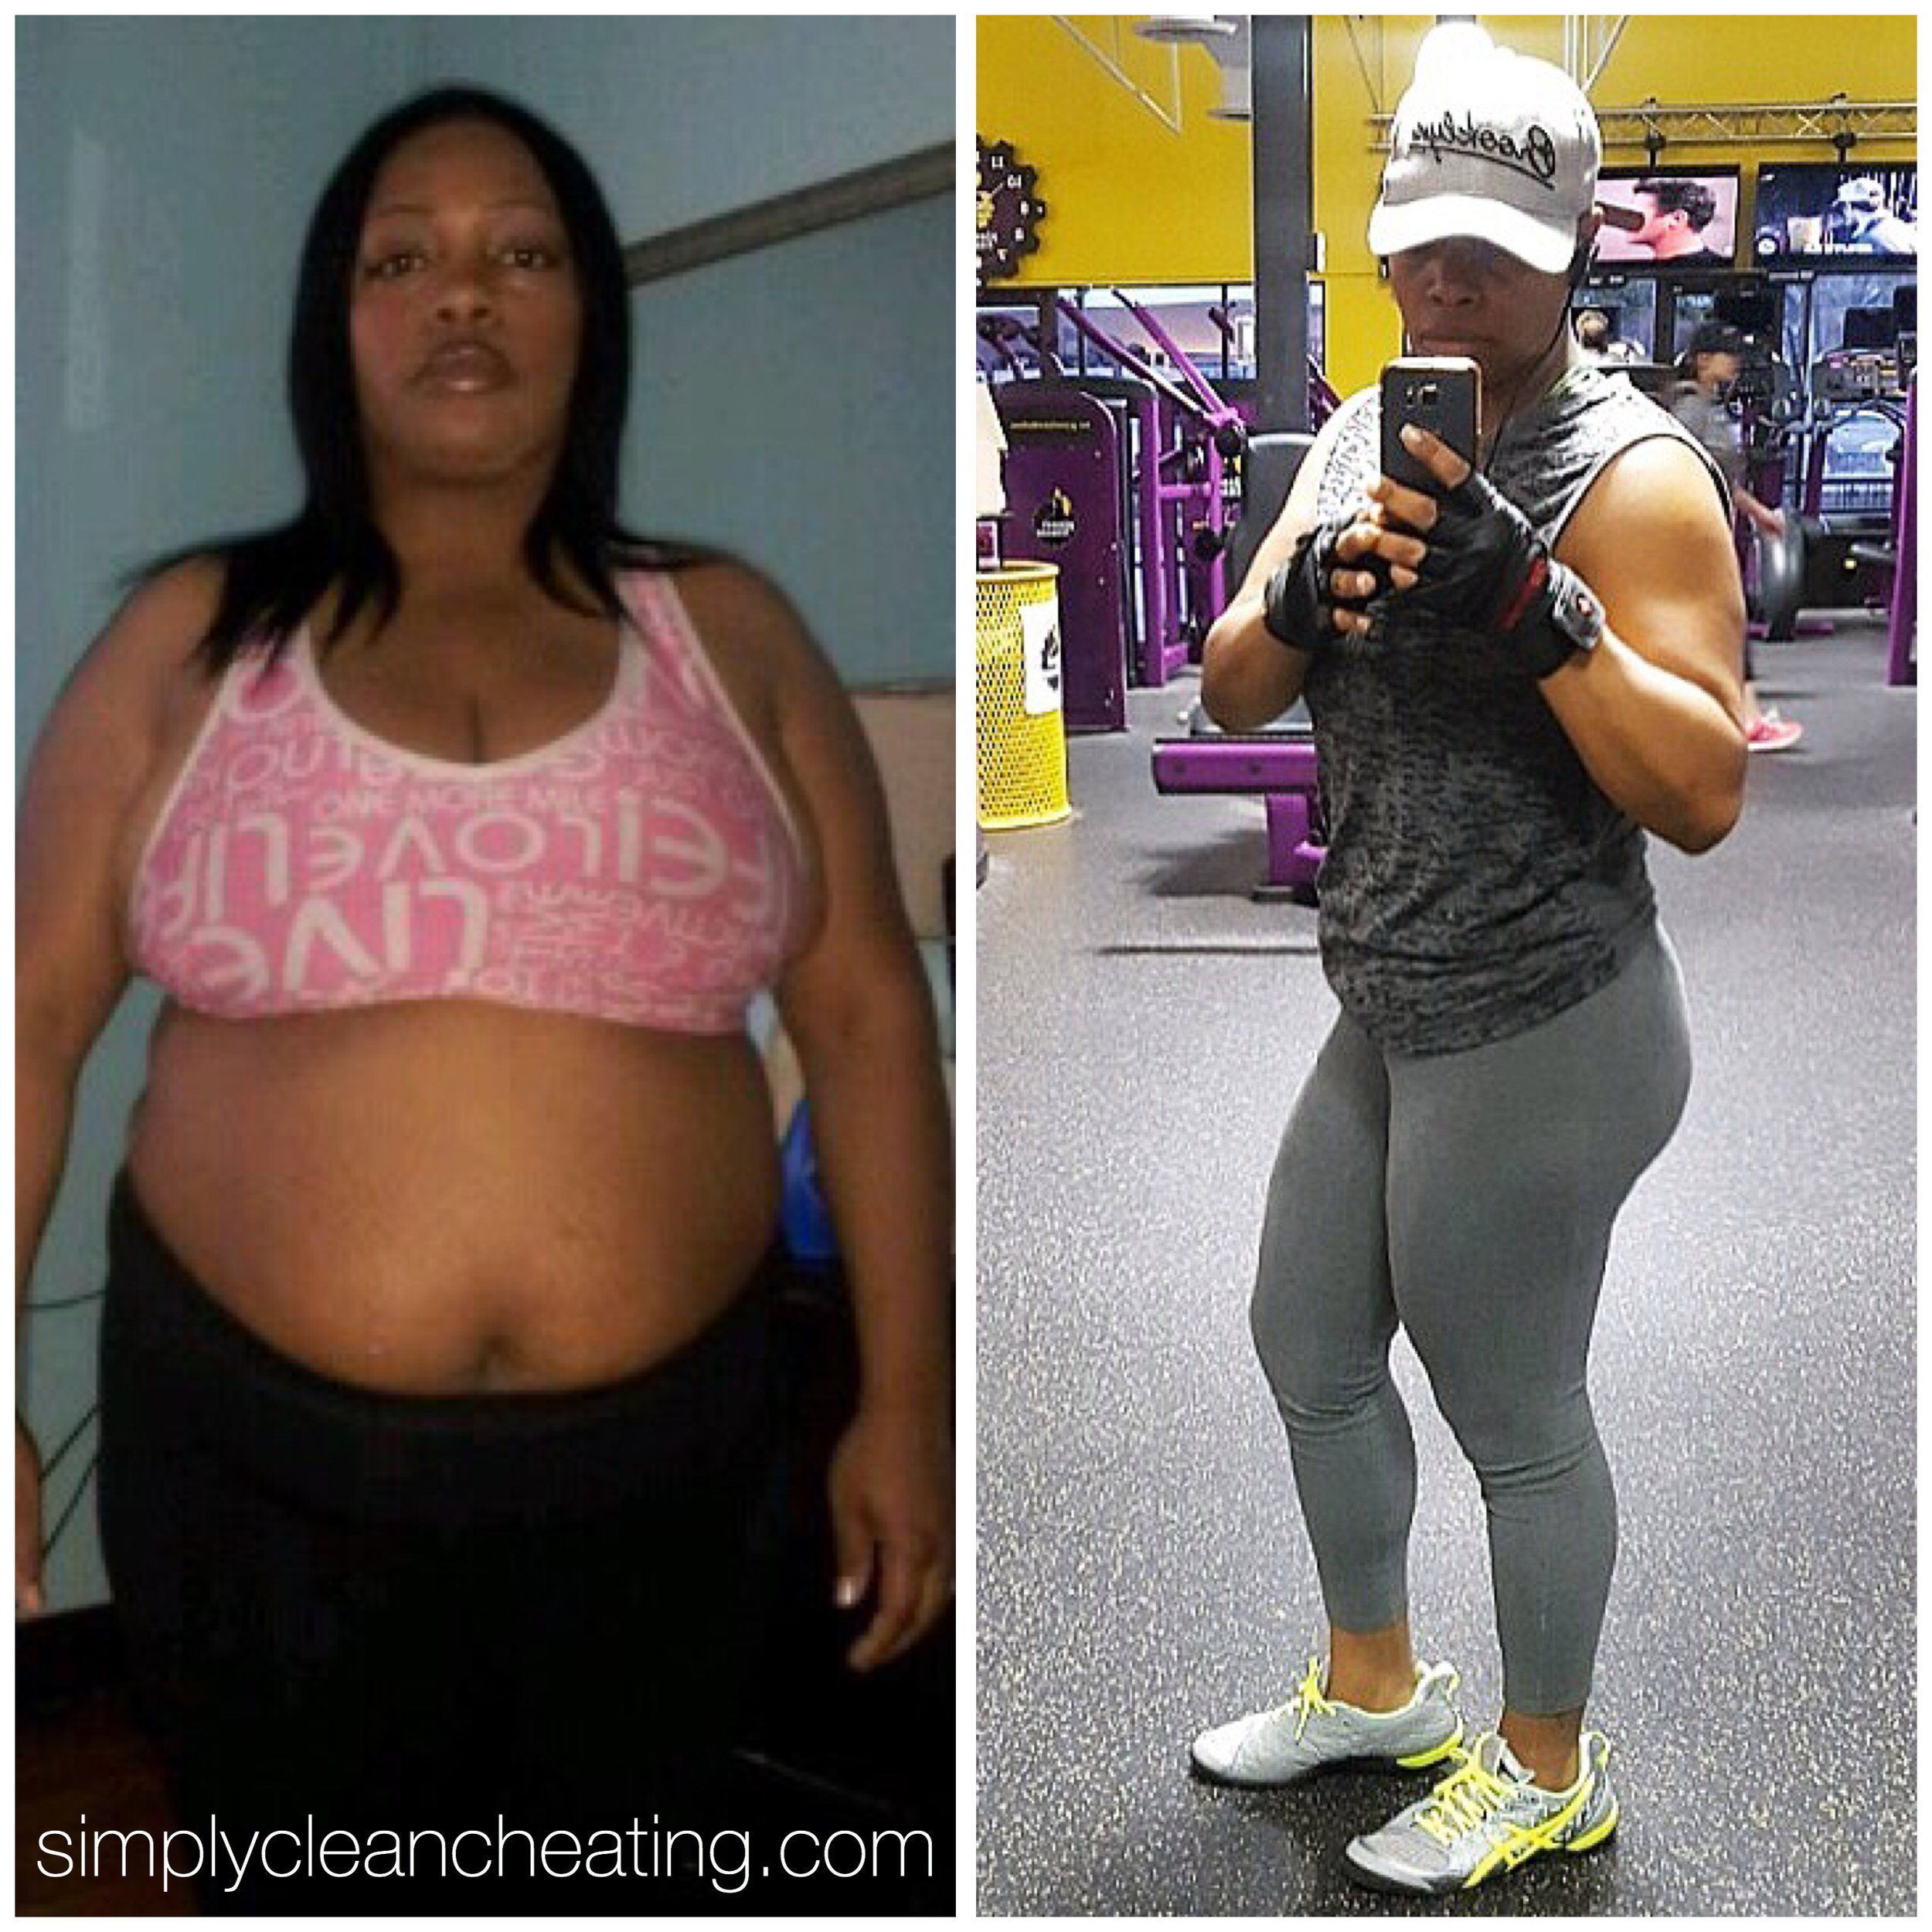 Nieta's fitness journey is amazing! check out her website to follow her transformation at  www.simplycleancheating.com